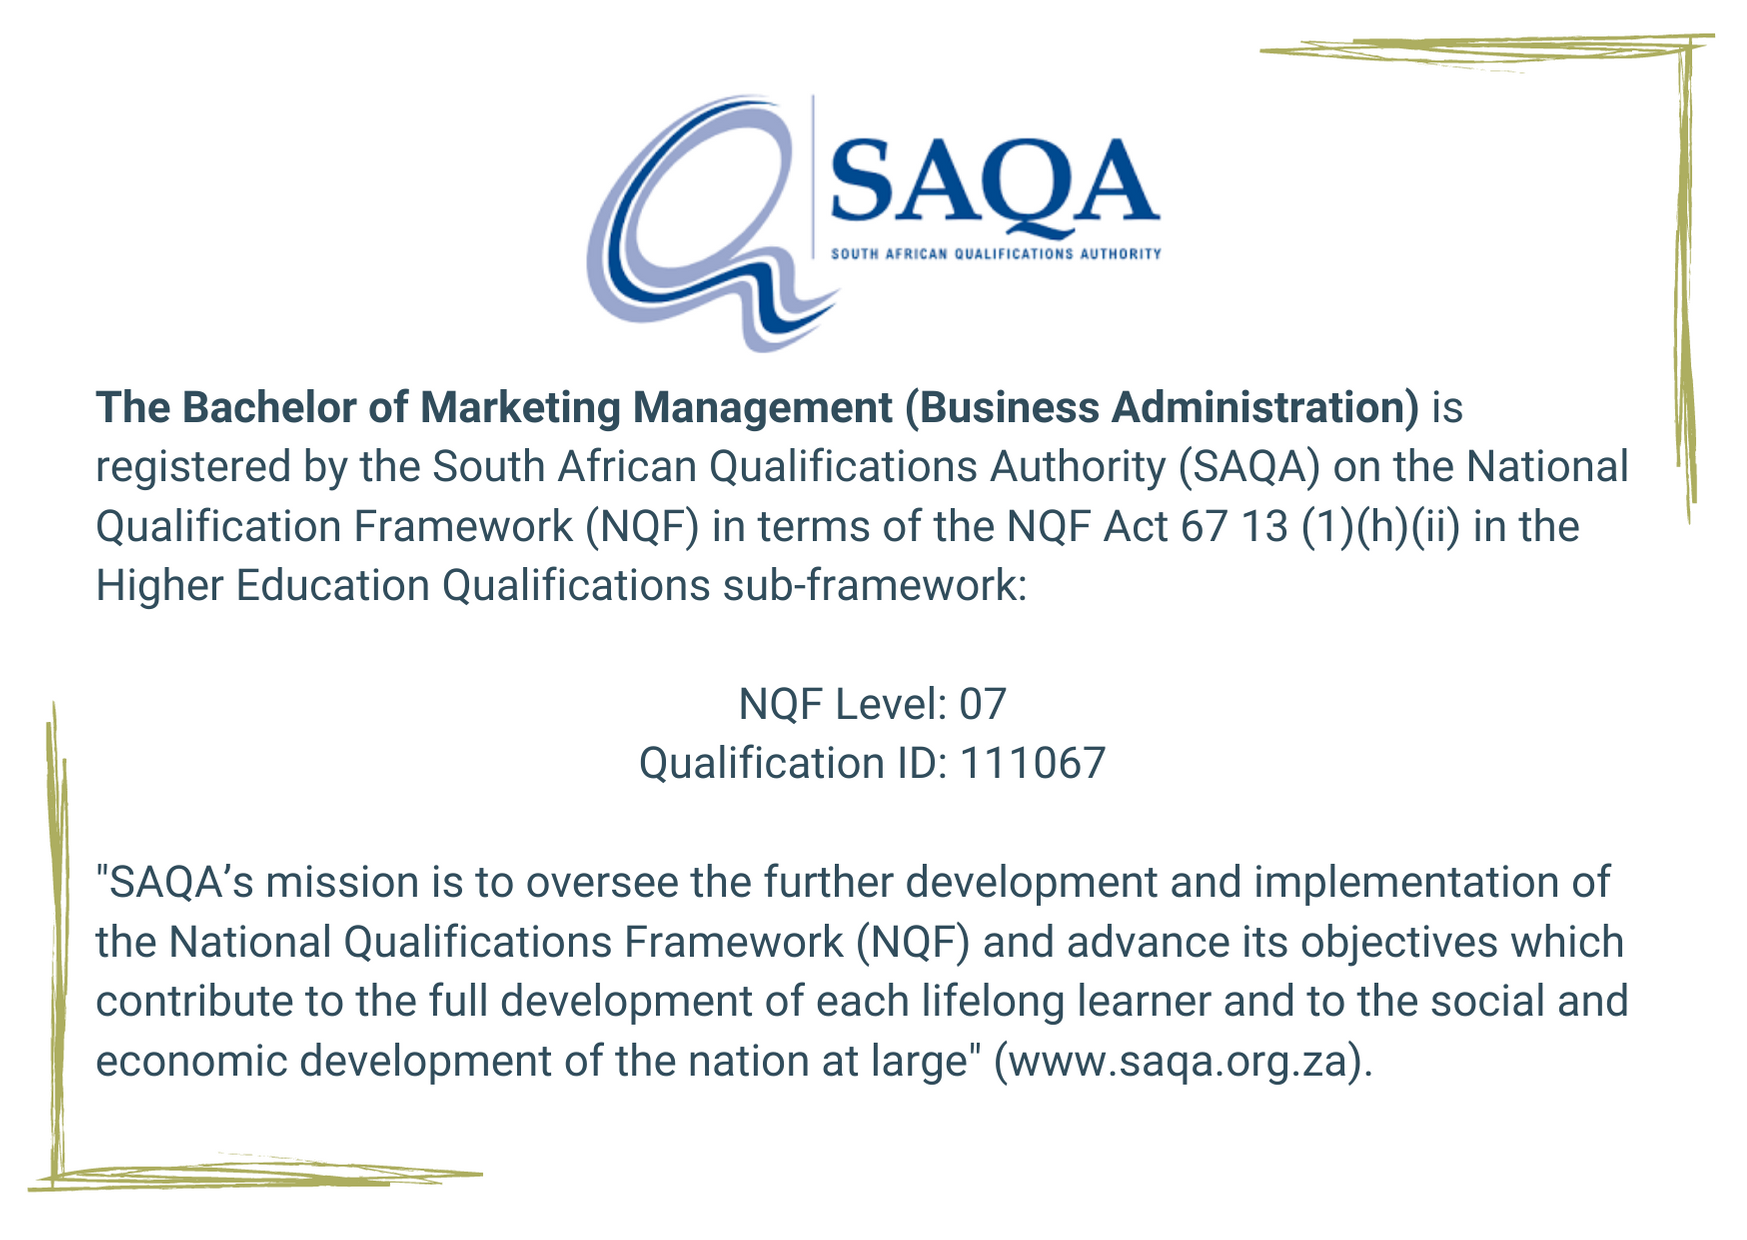 """SAQA The Bachelor of Marketing Management (Business Administration) is registered by the South African Qualifications Authority (SAQA) on the National Qualification Framework (NQF) in terms of the NQF Act 67 13 (1)(h)(ii) in the Higher Education Qualifications sub-framework: NQF Level: 07 Qualification ID: 111067 """"SAQA's mission is to oversee the further development and implementation of the National Qualifications Framework (NQF) and advance its objectives which contribute to the full development of each lifelong learner and to the social and economic development of the nation at large"""" (www.saqa.org.za)."""